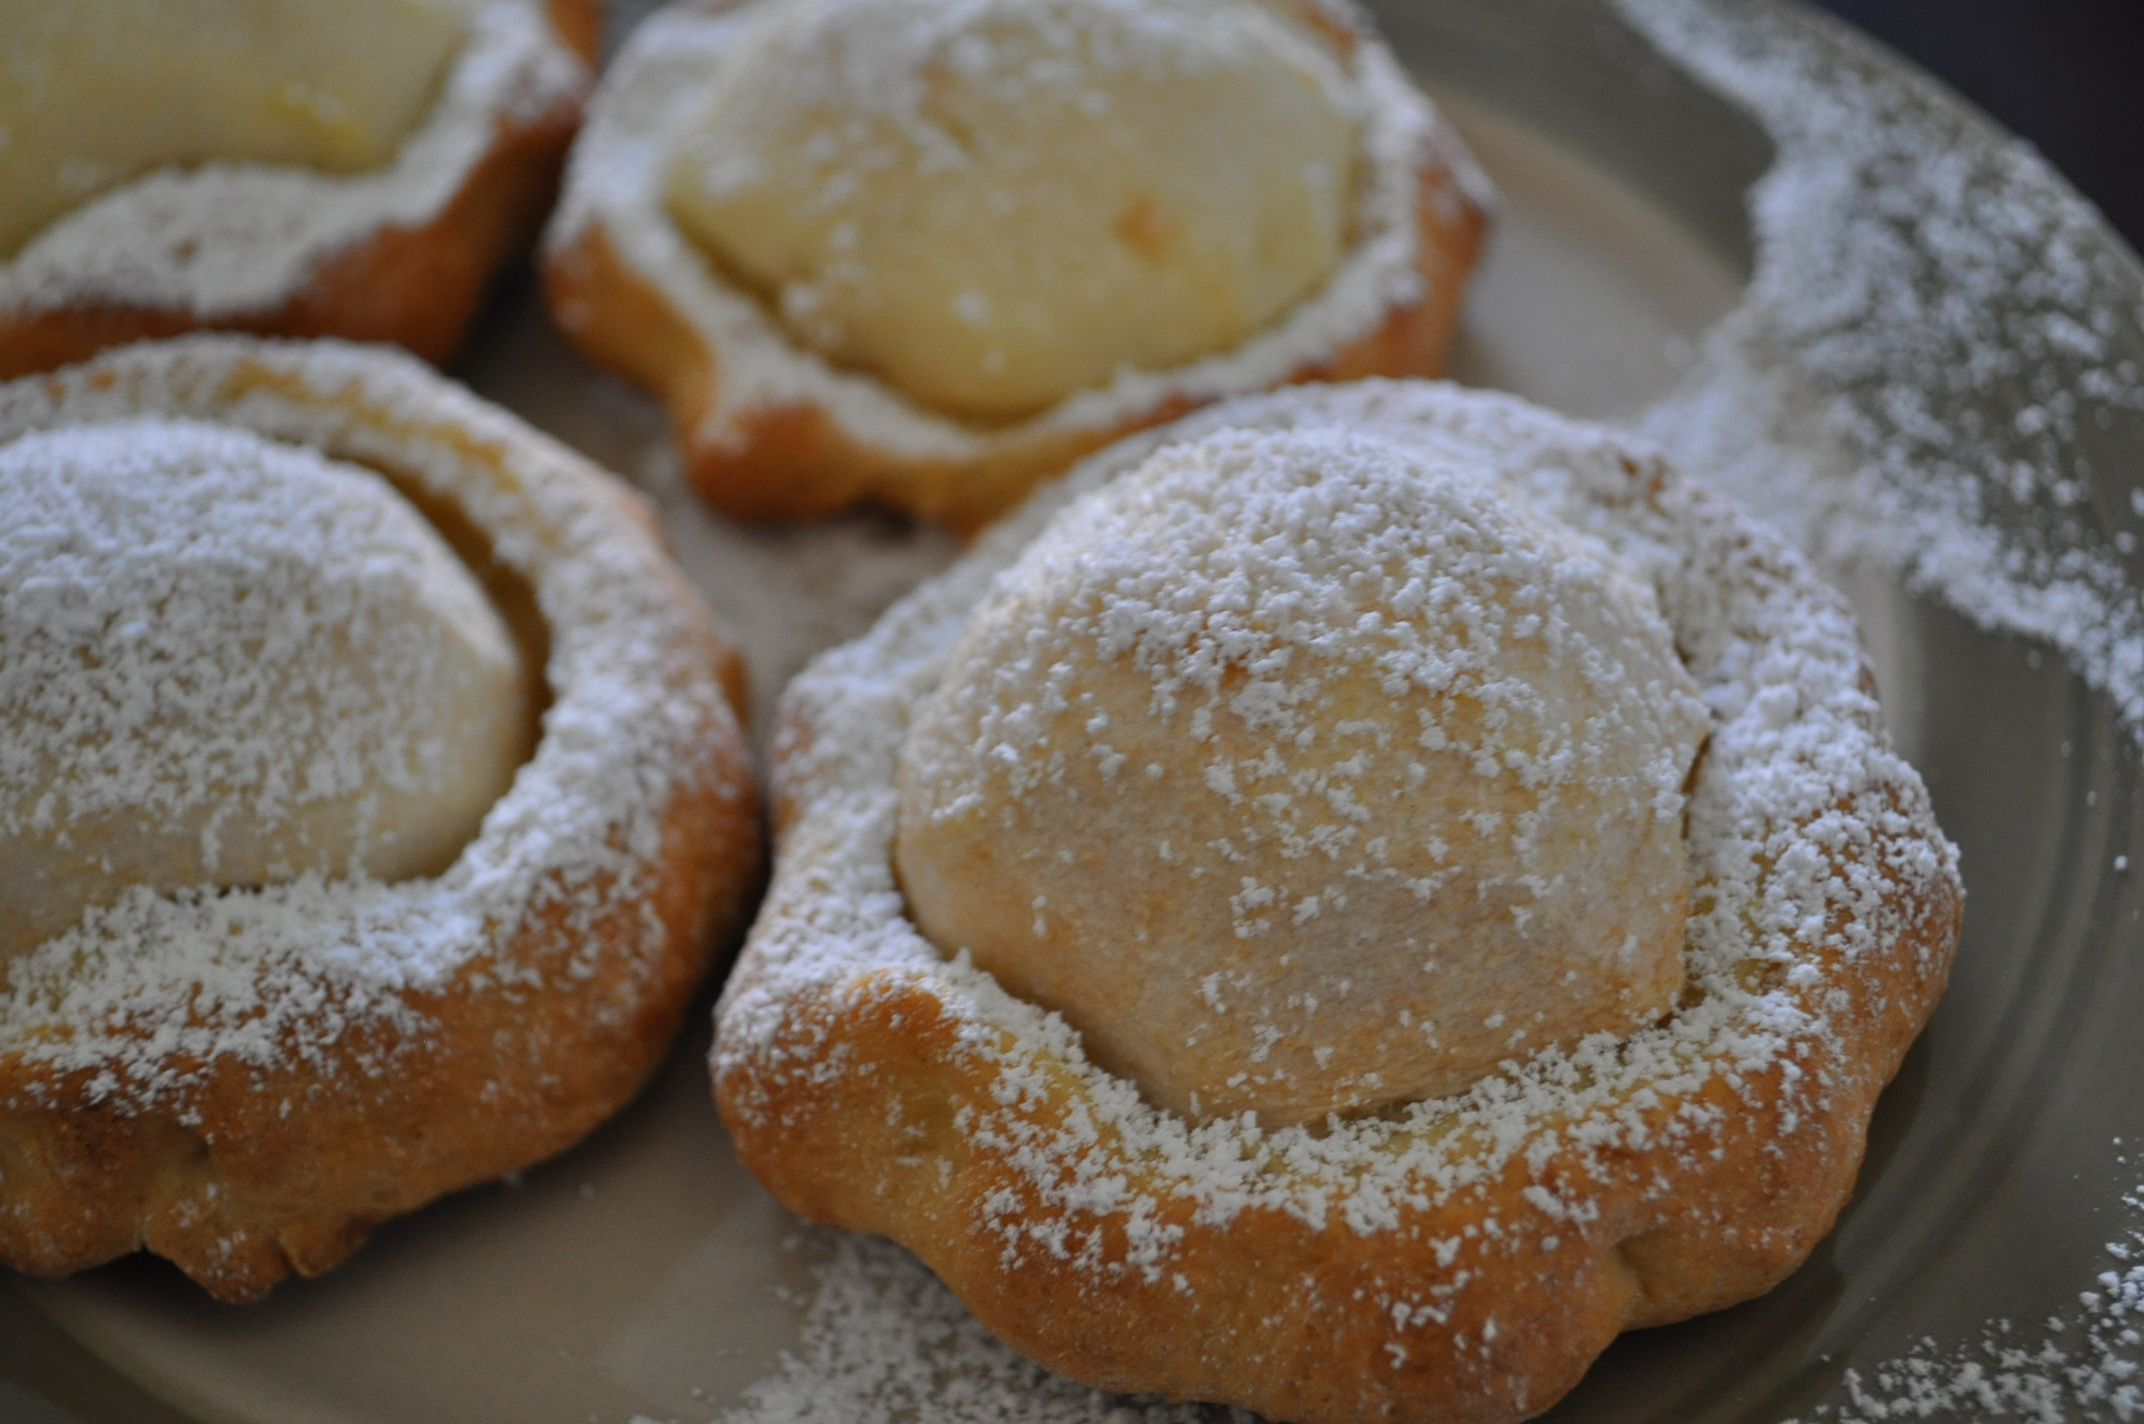 Picture of Aplerbecker Apfelbaeckchen (traditional Pastry From Germany)